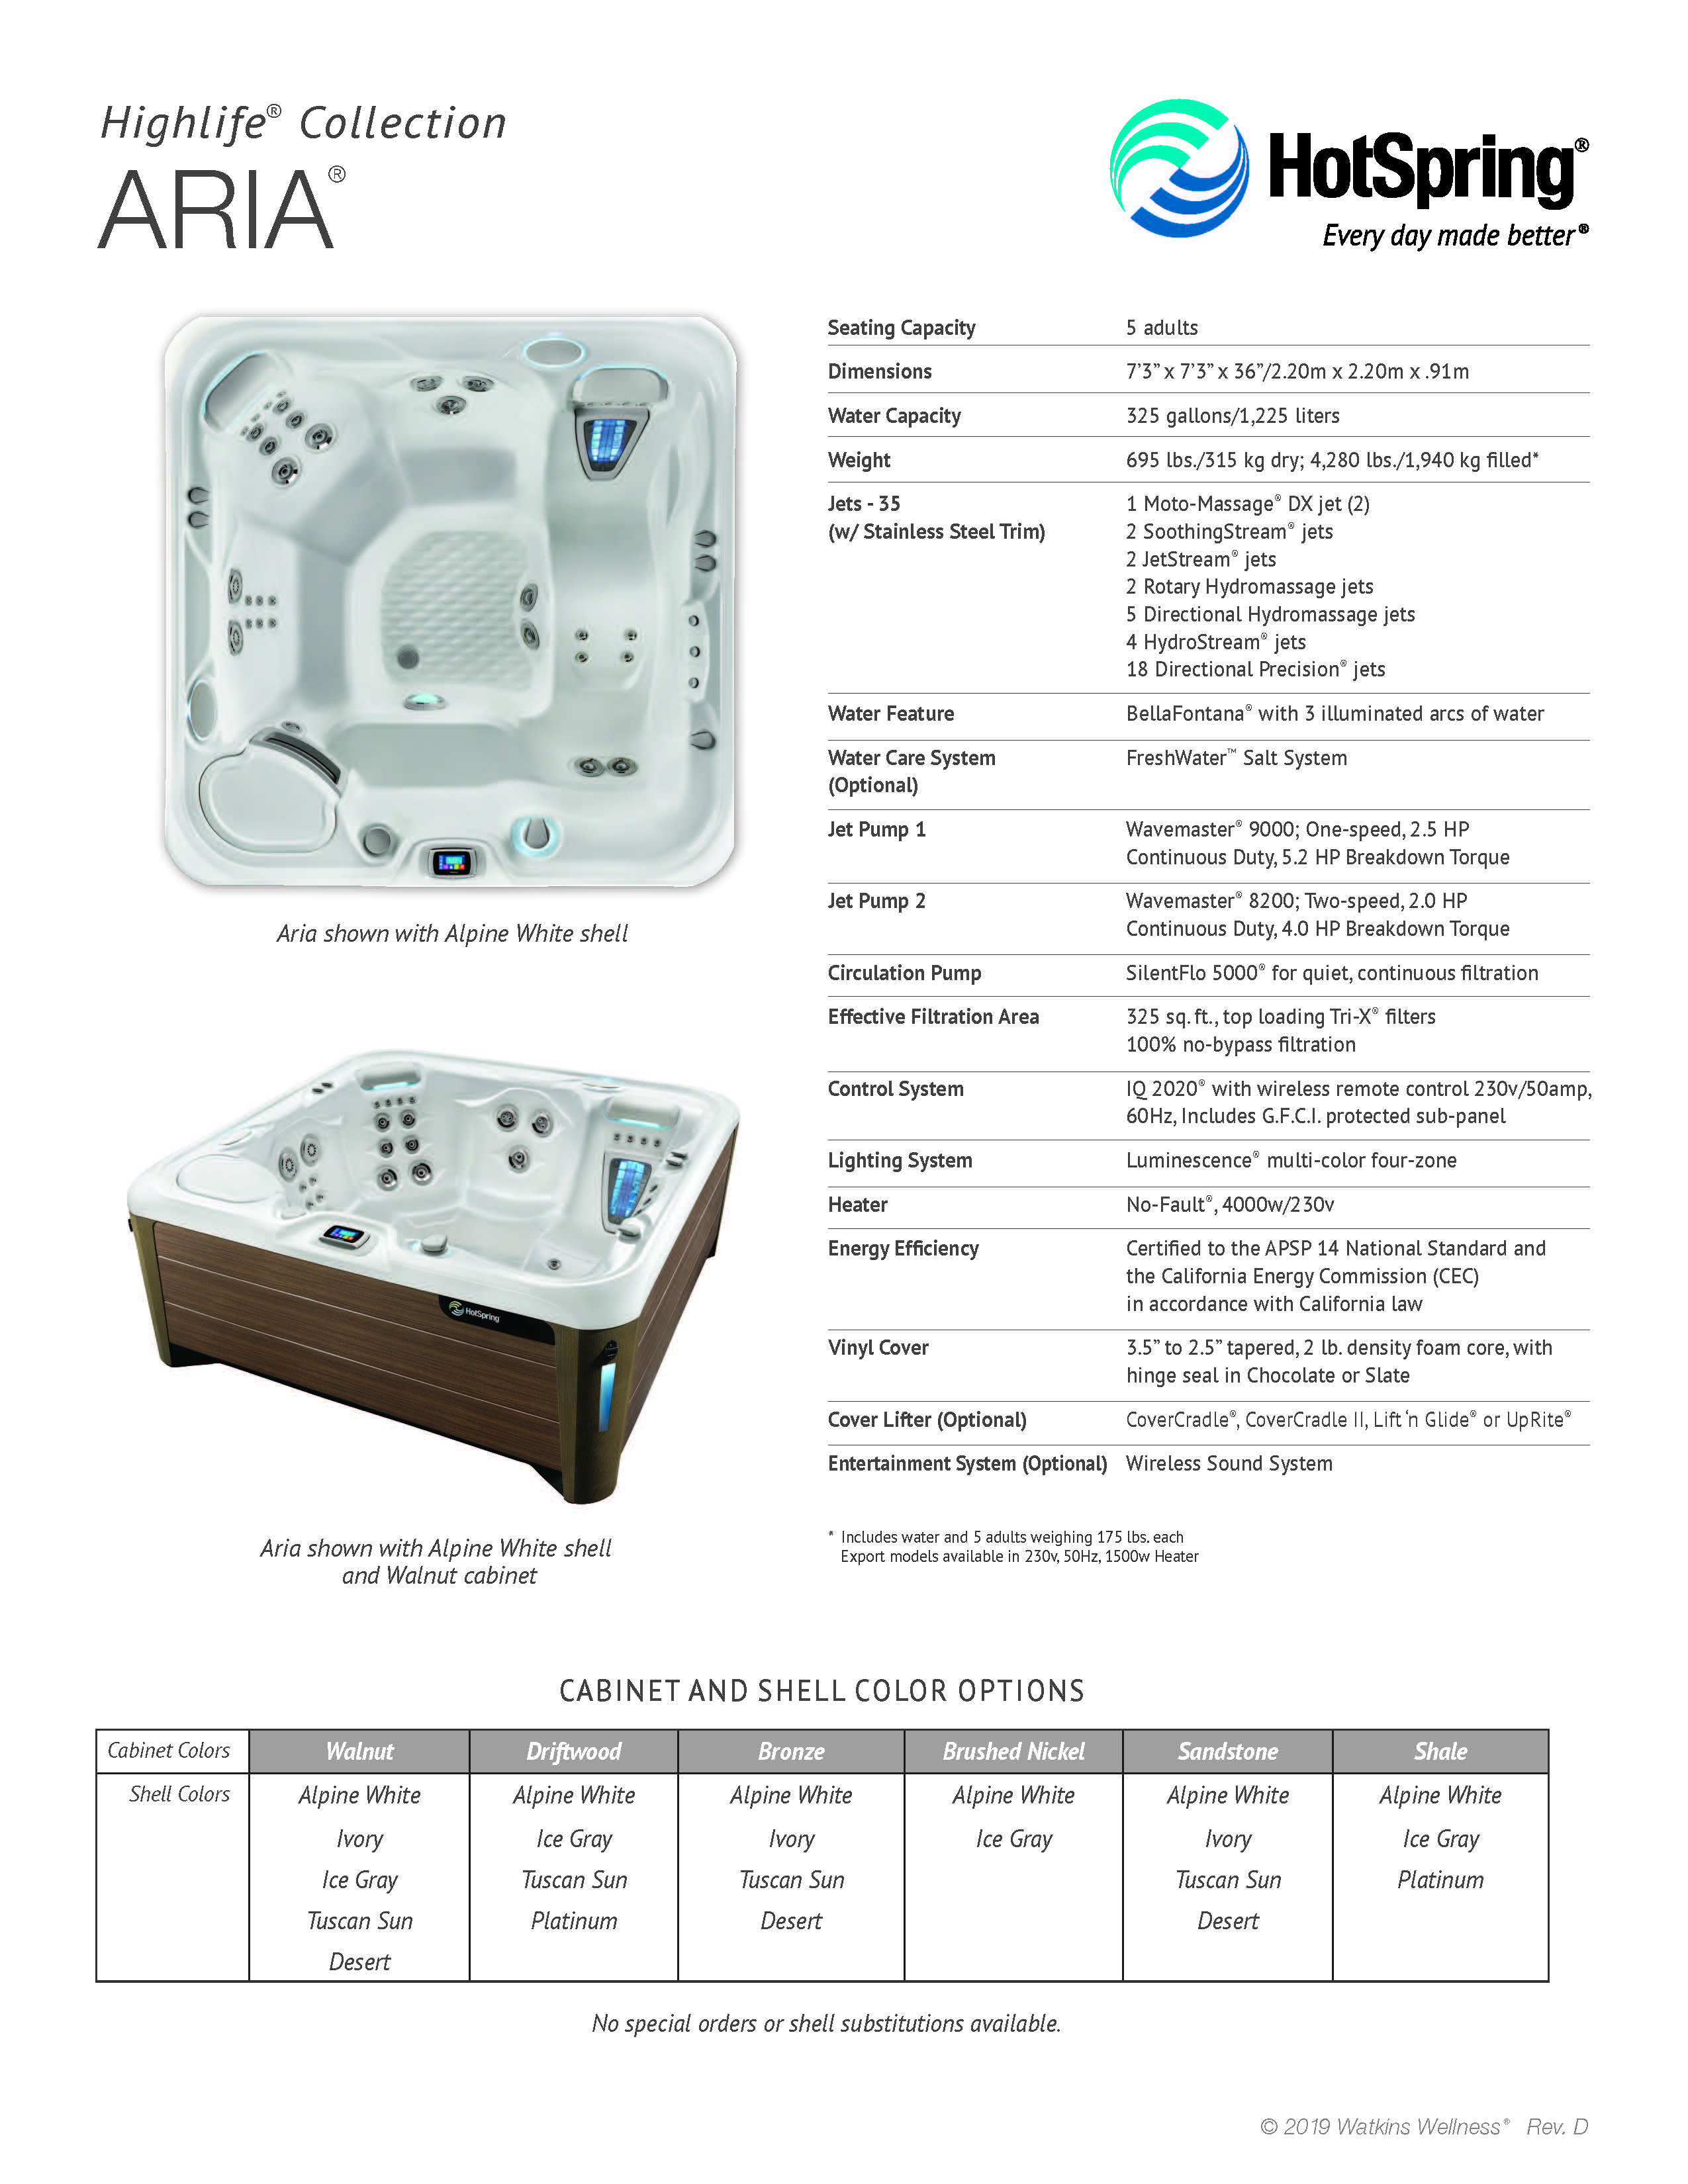 2019-hot-spring-highlife-aria-specification-sheet-rev-d.jpg